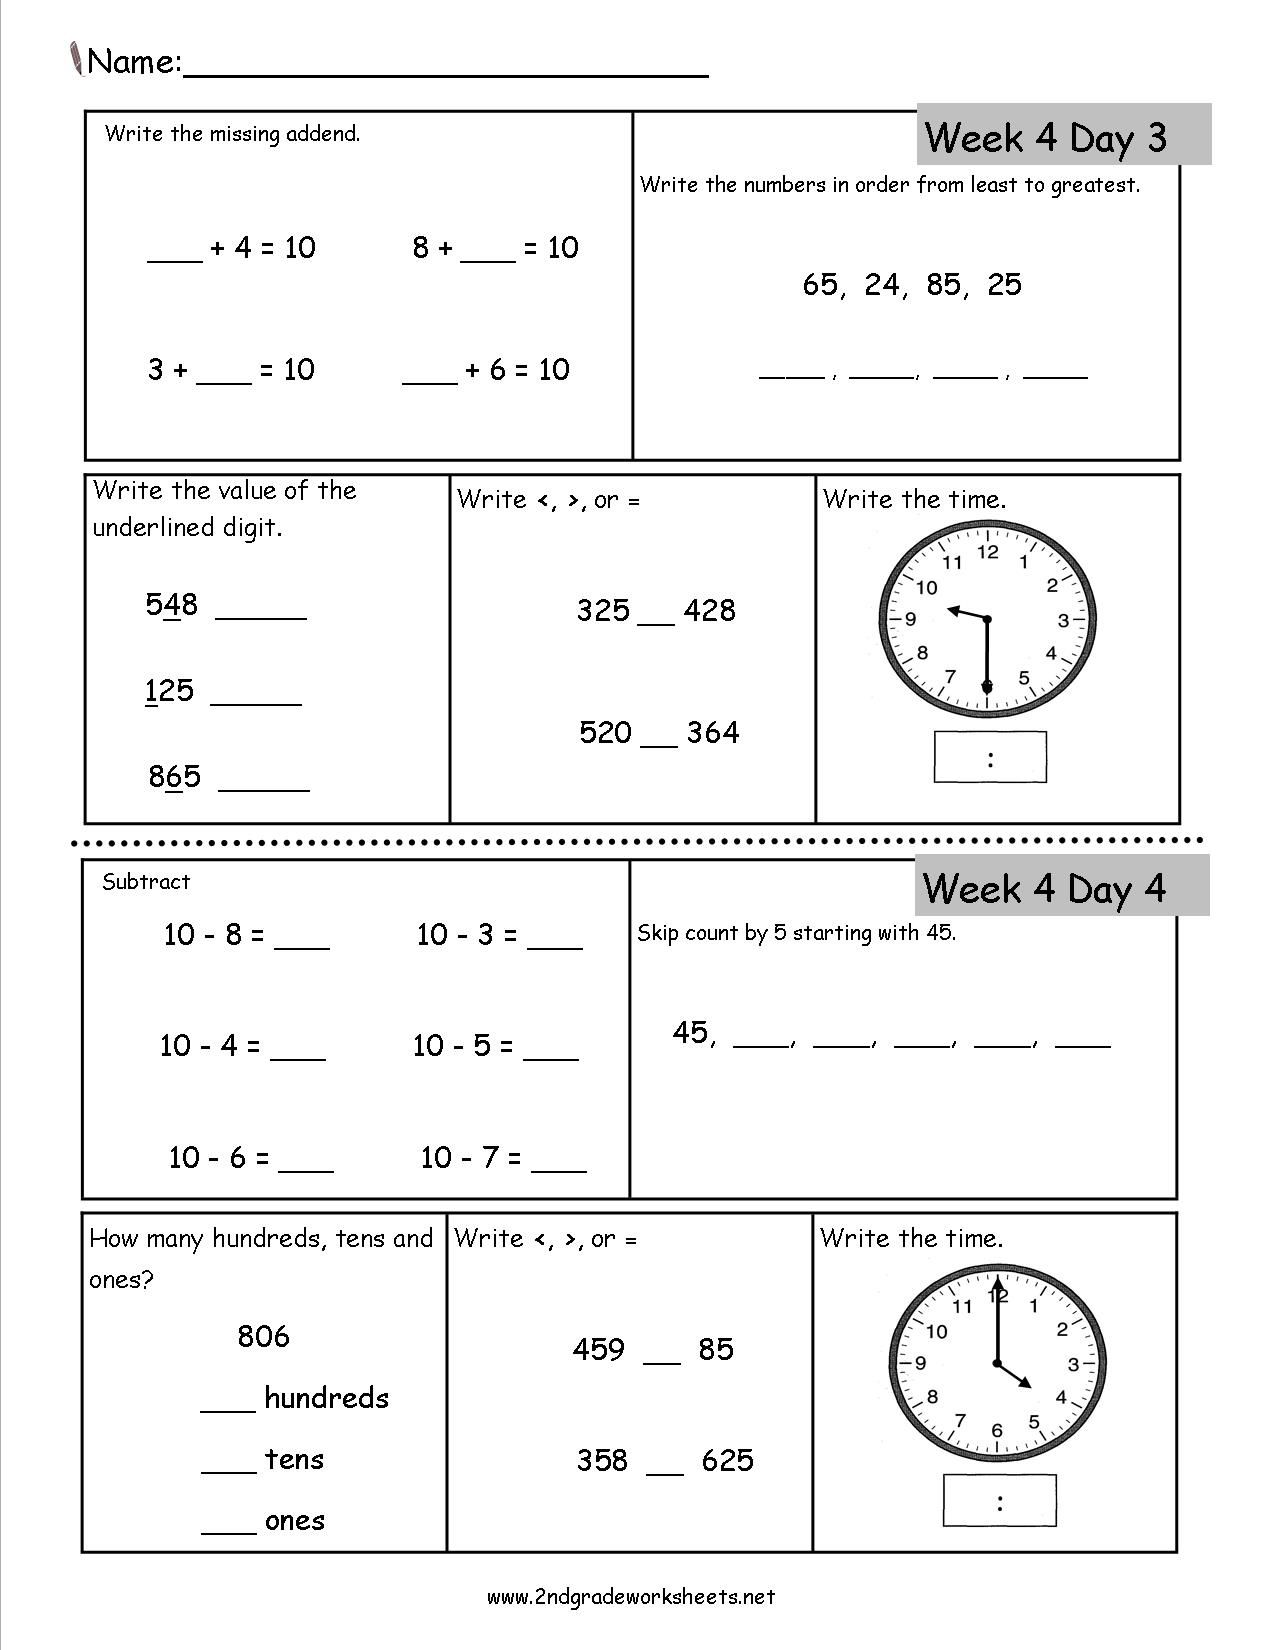 hight resolution of Free 2nd Grade Daily Math Worksheets   Math review worksheets